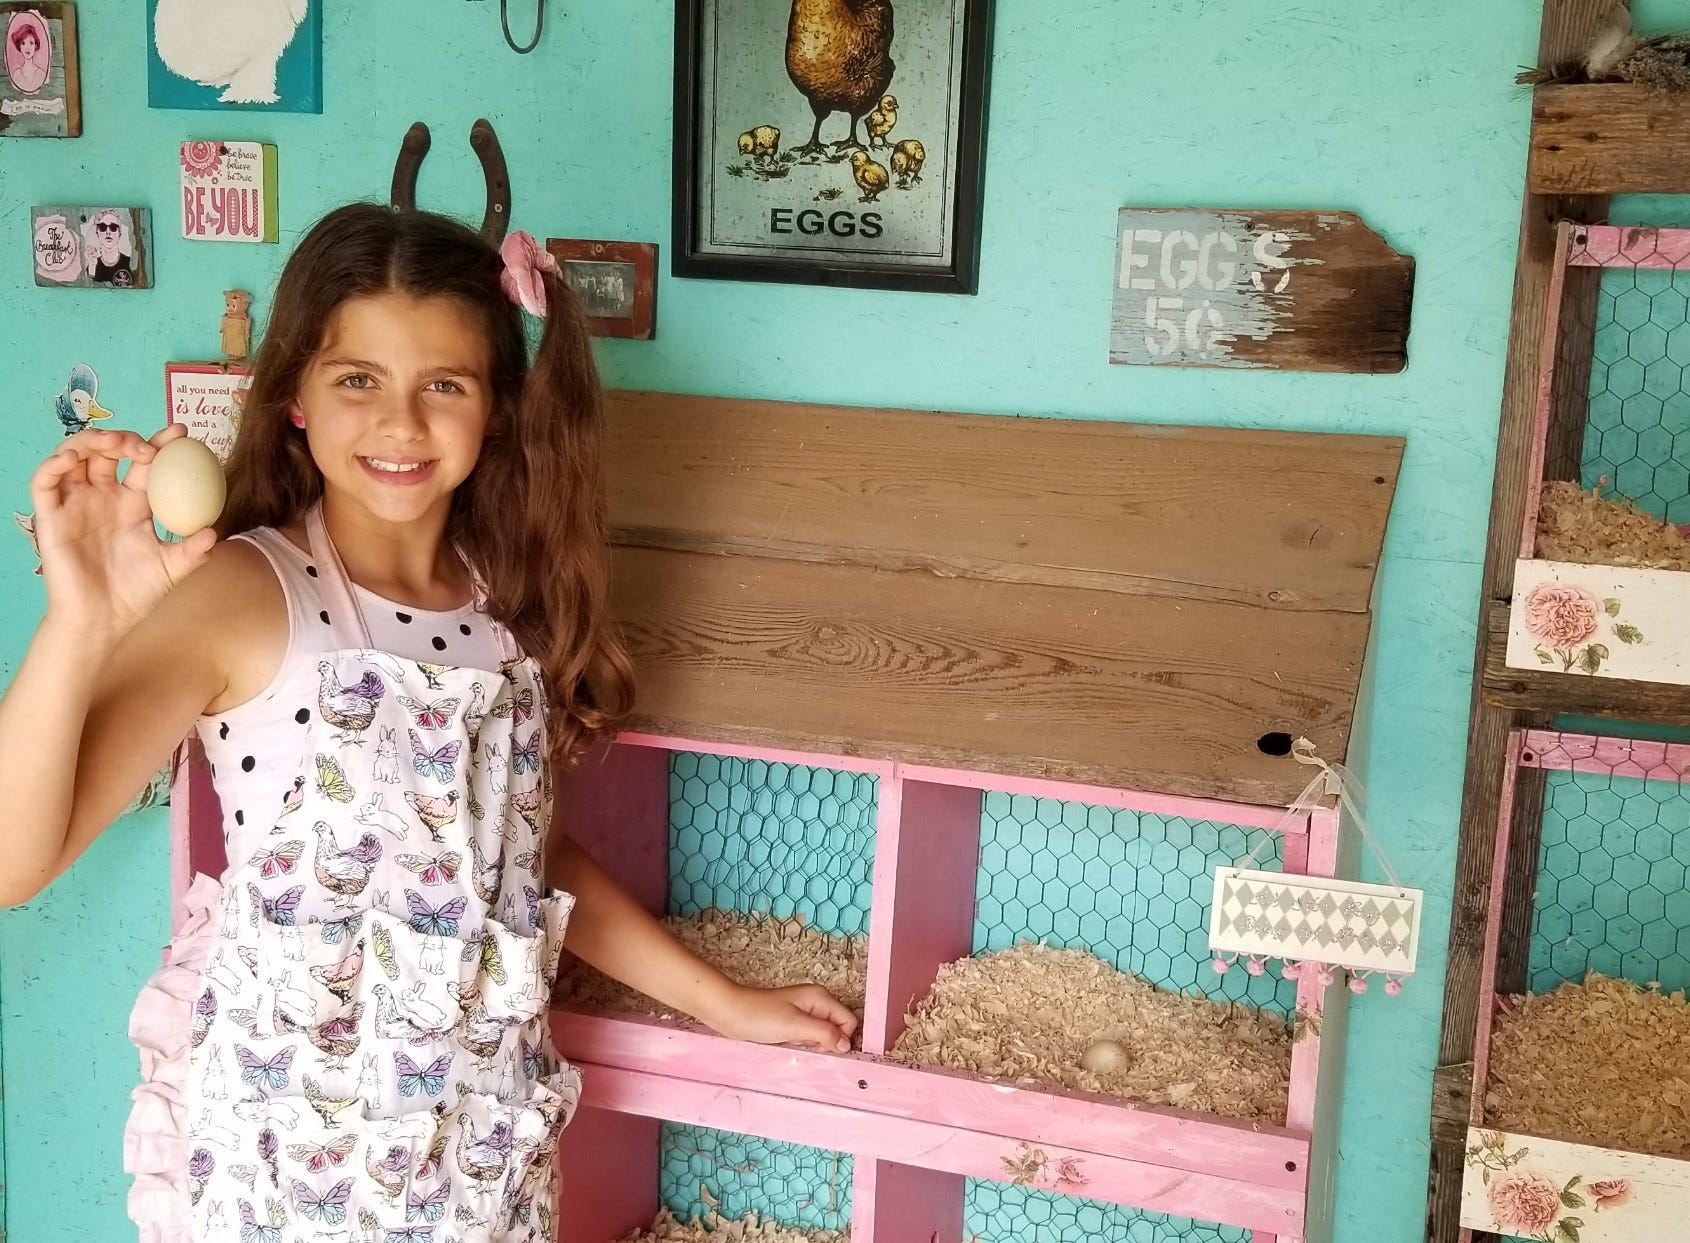 "Giselle Raad, 11, collects eggs from ""The Breakfast Club"" chicken coop on her family's property in Michigan. The coop features painted and hand-stenciled walls, art work and vintage decor including a chandelier and a painted shelf."